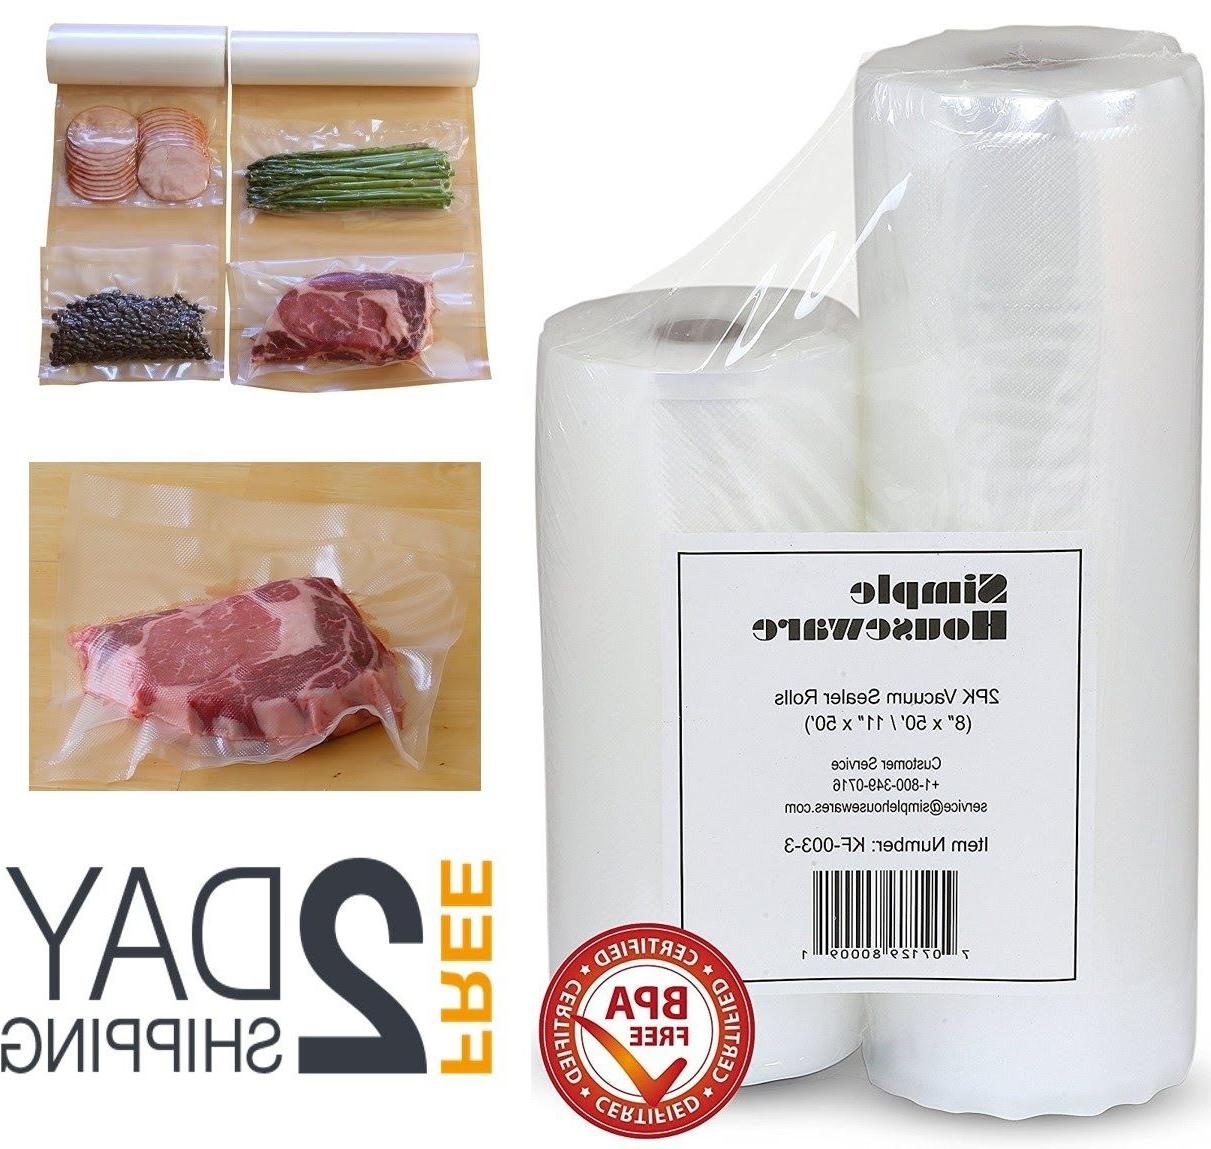 2 Pack 11x50 and 8x50 Vacuum Sealer Bags Rolls Food Saver St